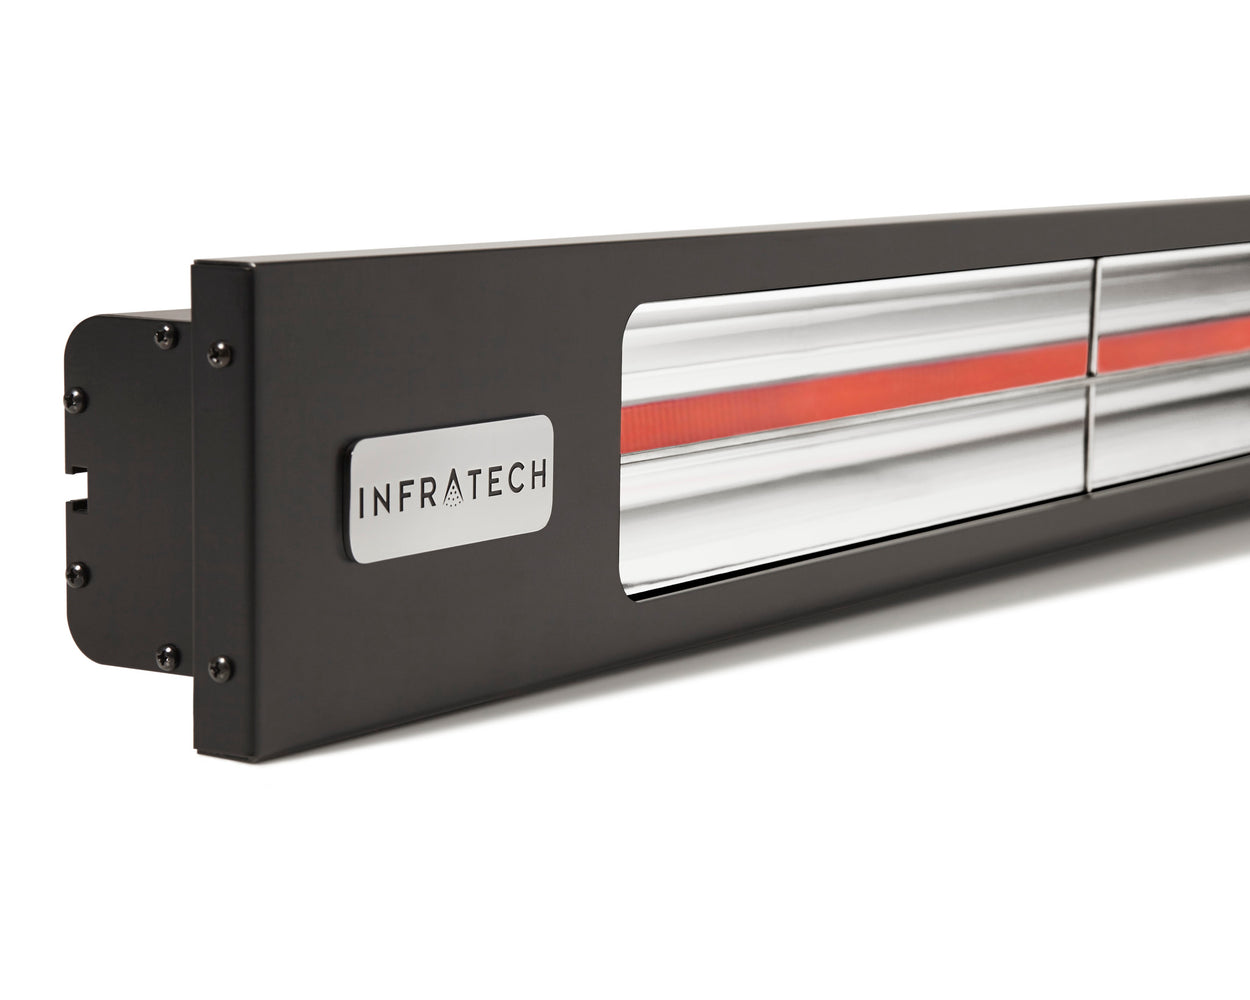 INFRATECH SL30 3KW HEATER BLACK SHADOW